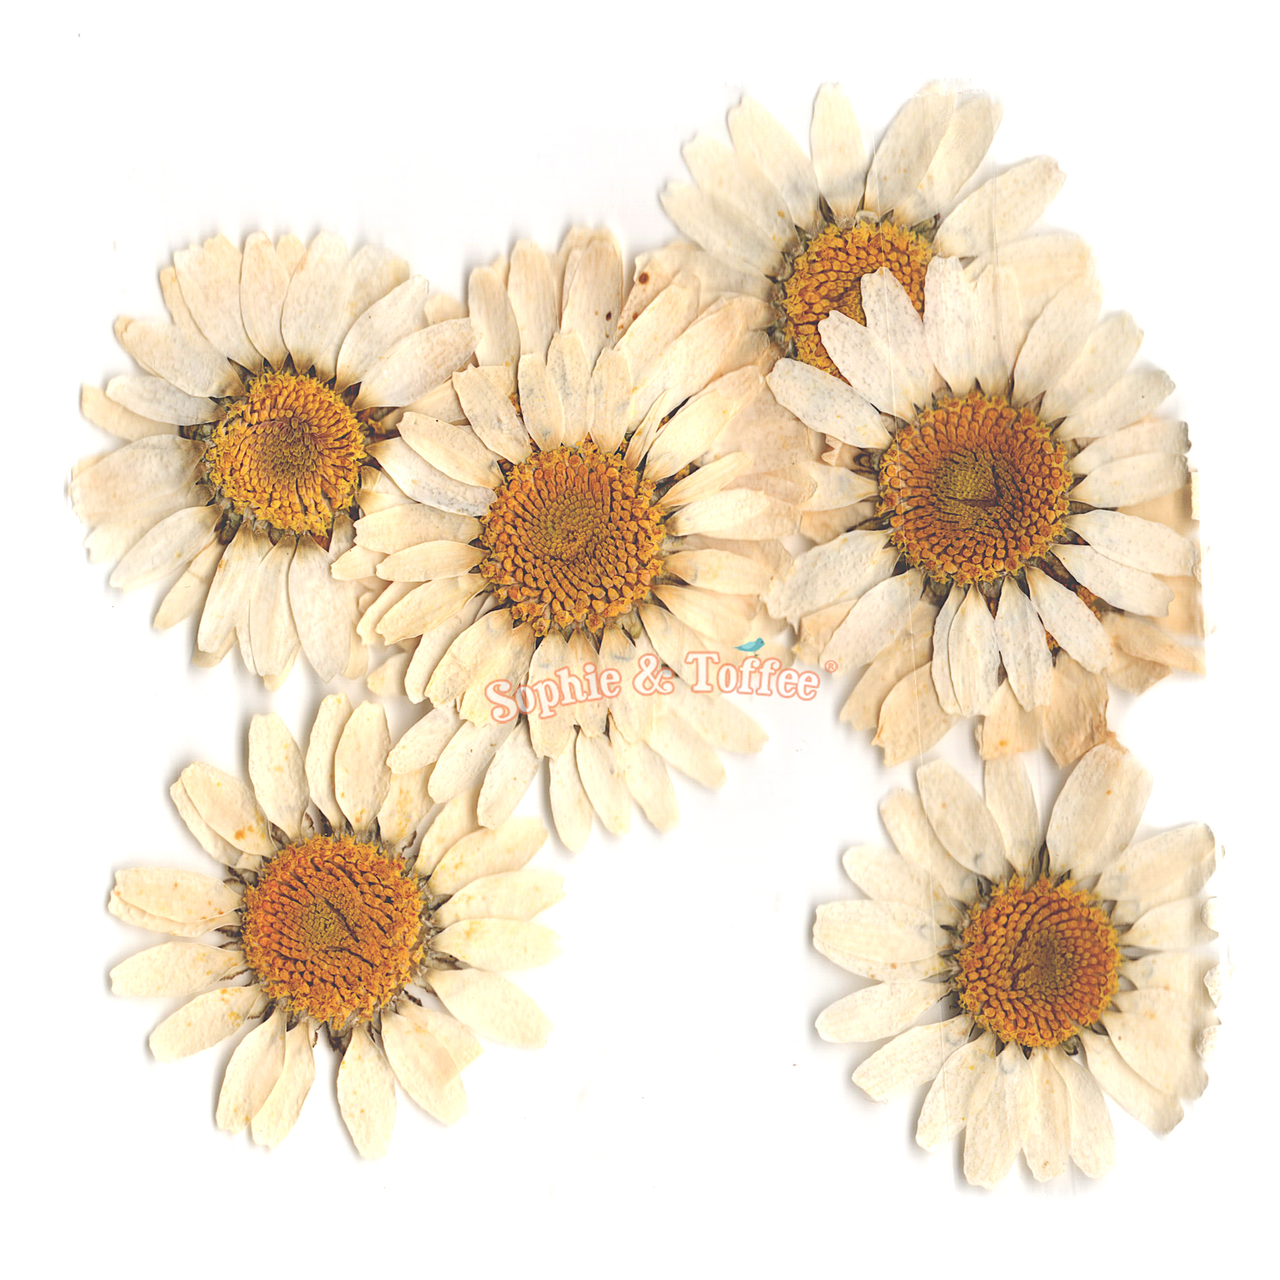 Daisy flower pressed dried real flowers pressed flower dried daisy flower pressed dried real flowers 10 pieces izmirmasajfo